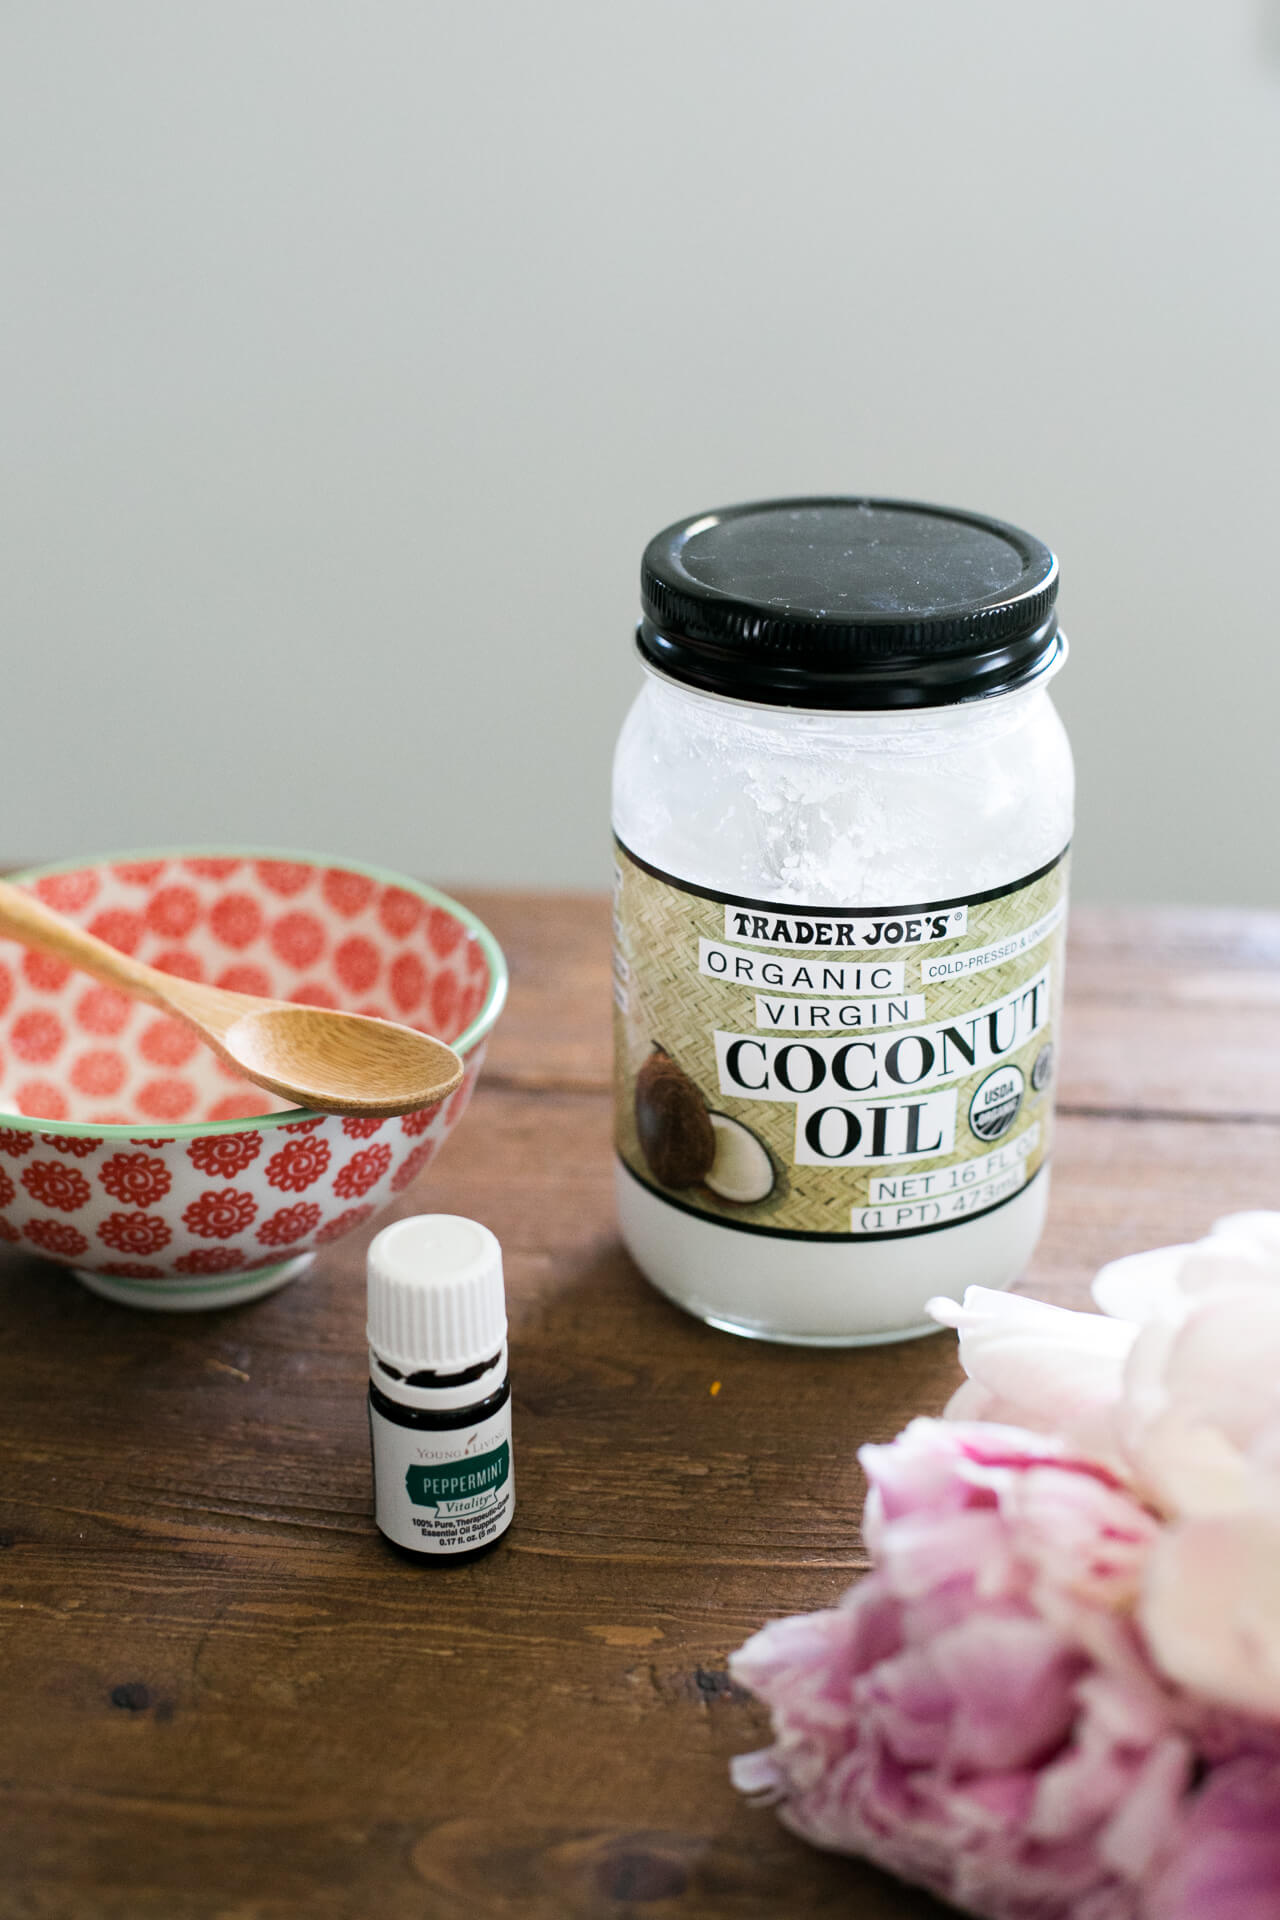 now up on M Loves M oil pulling wellness challenge so excited to try oil pulling at home - M Loves M @marmar